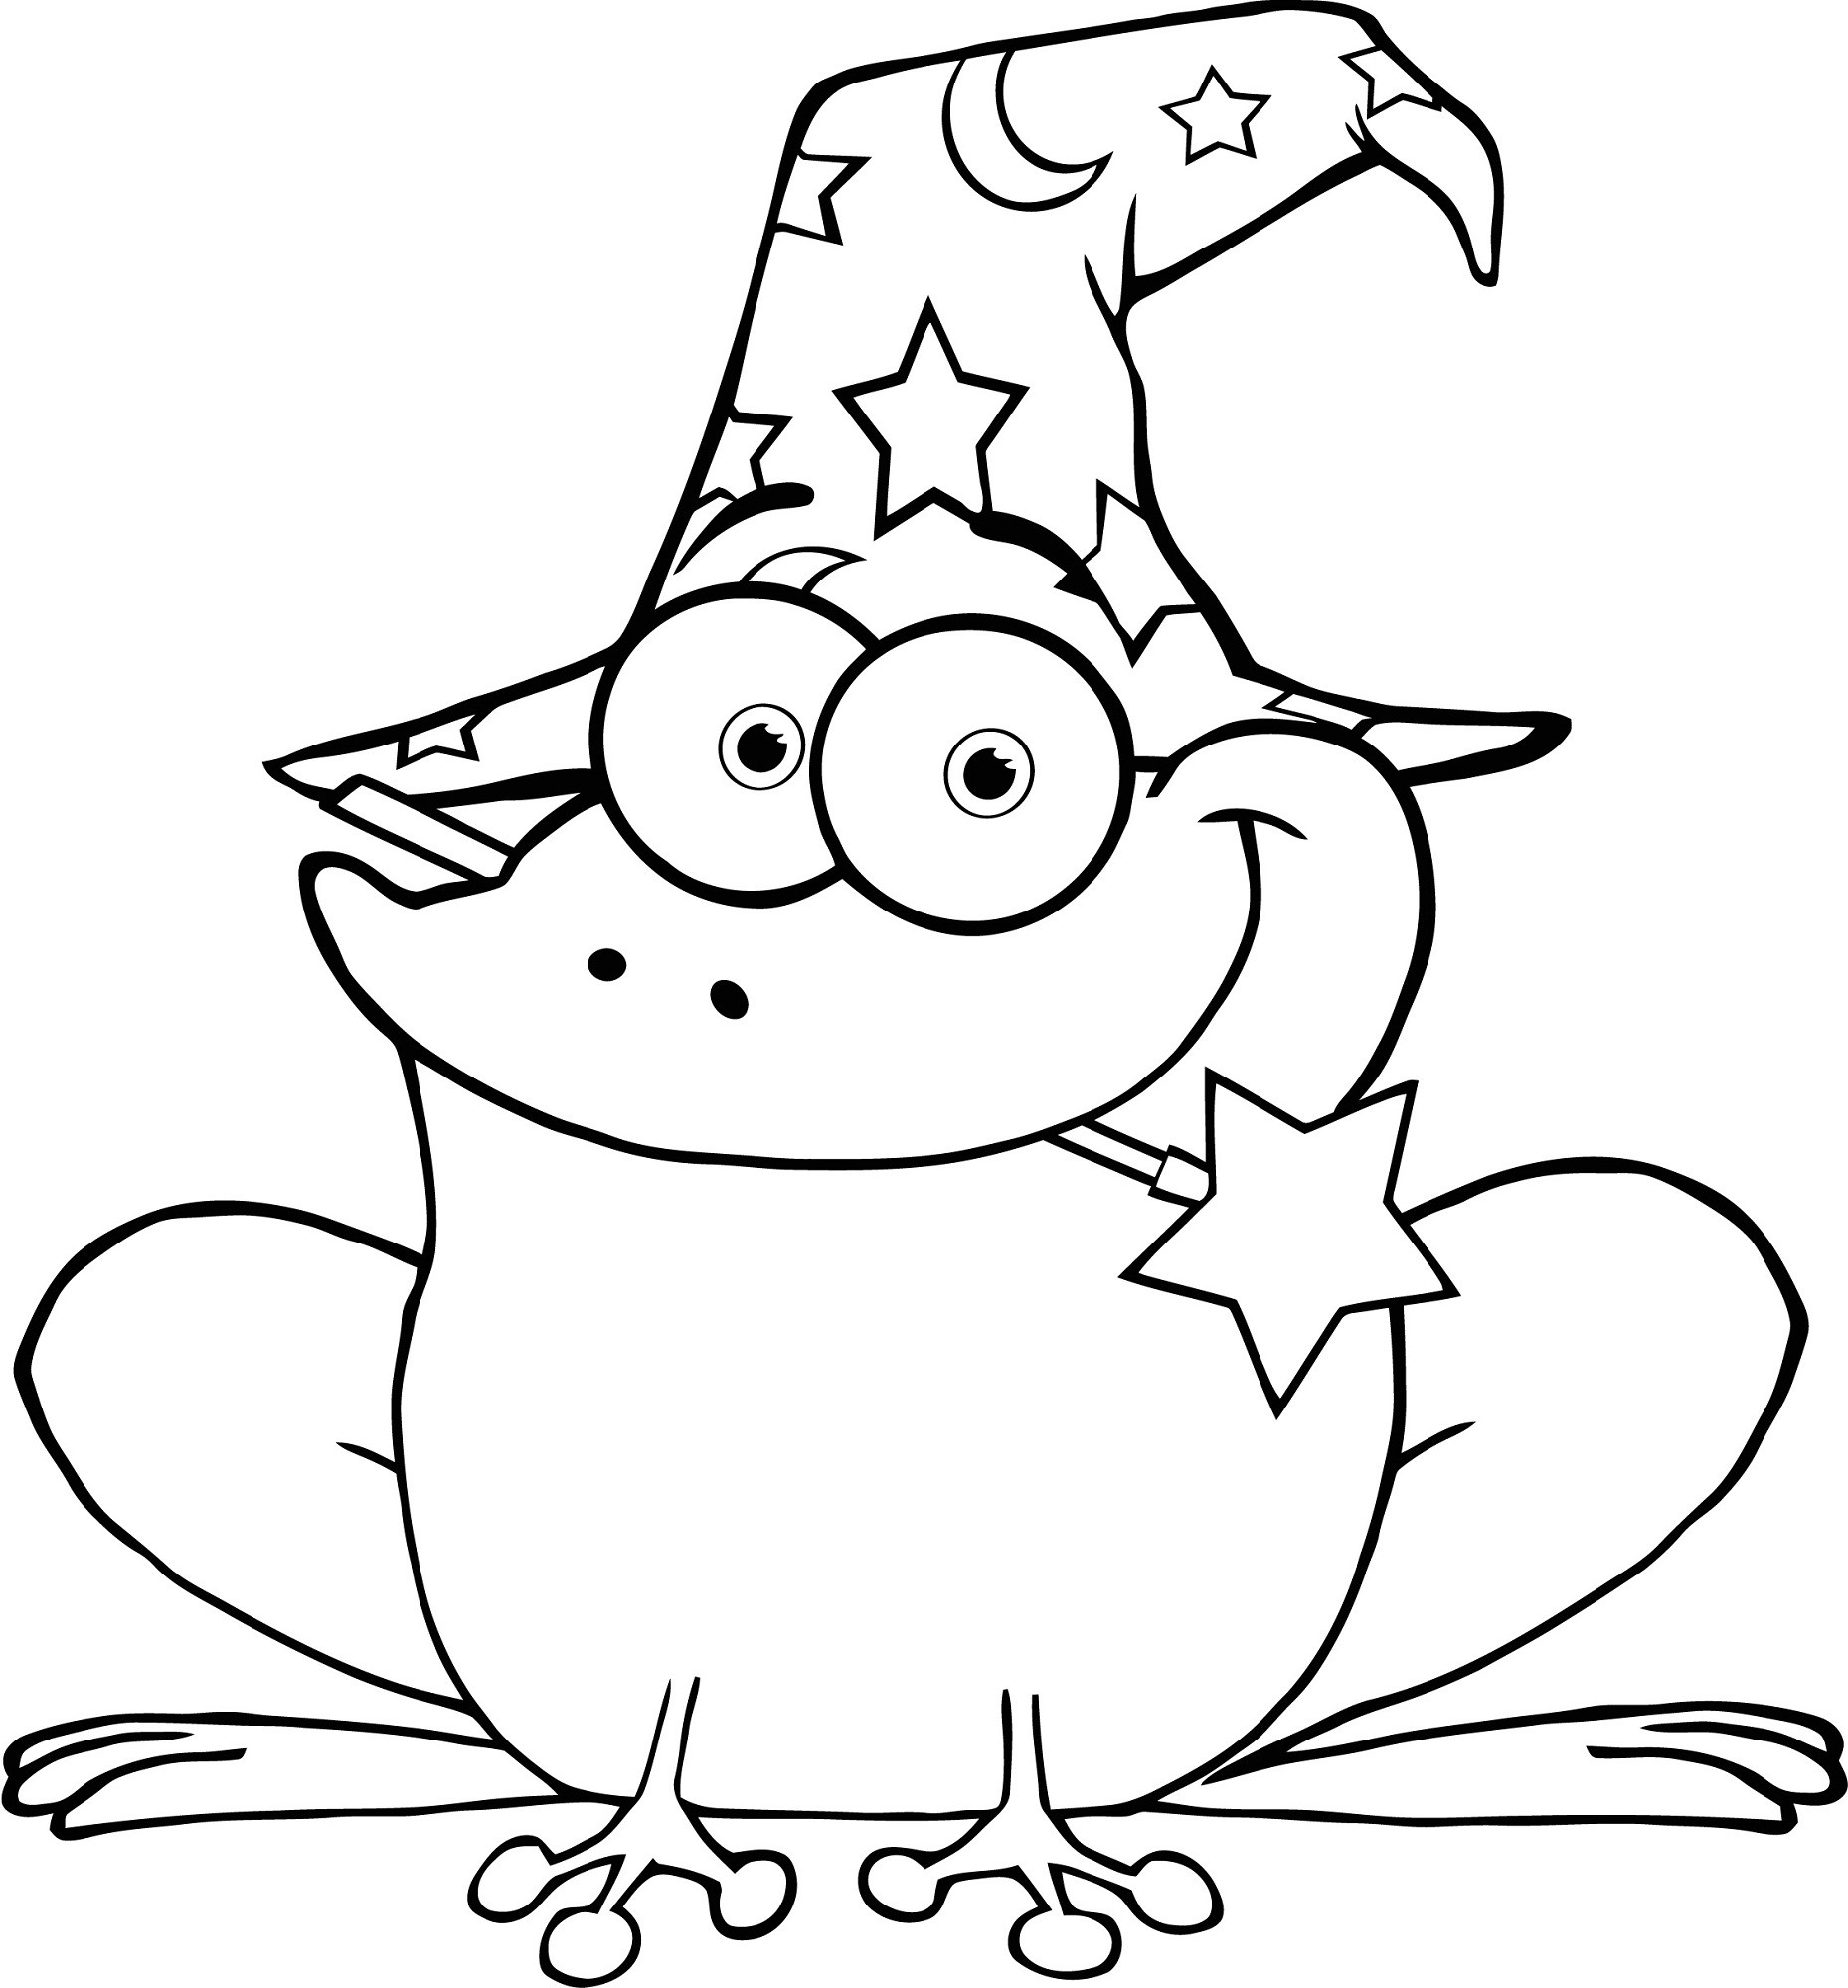 frogs coloring pages cute frog coloring sheets 101 activity frogs pages coloring